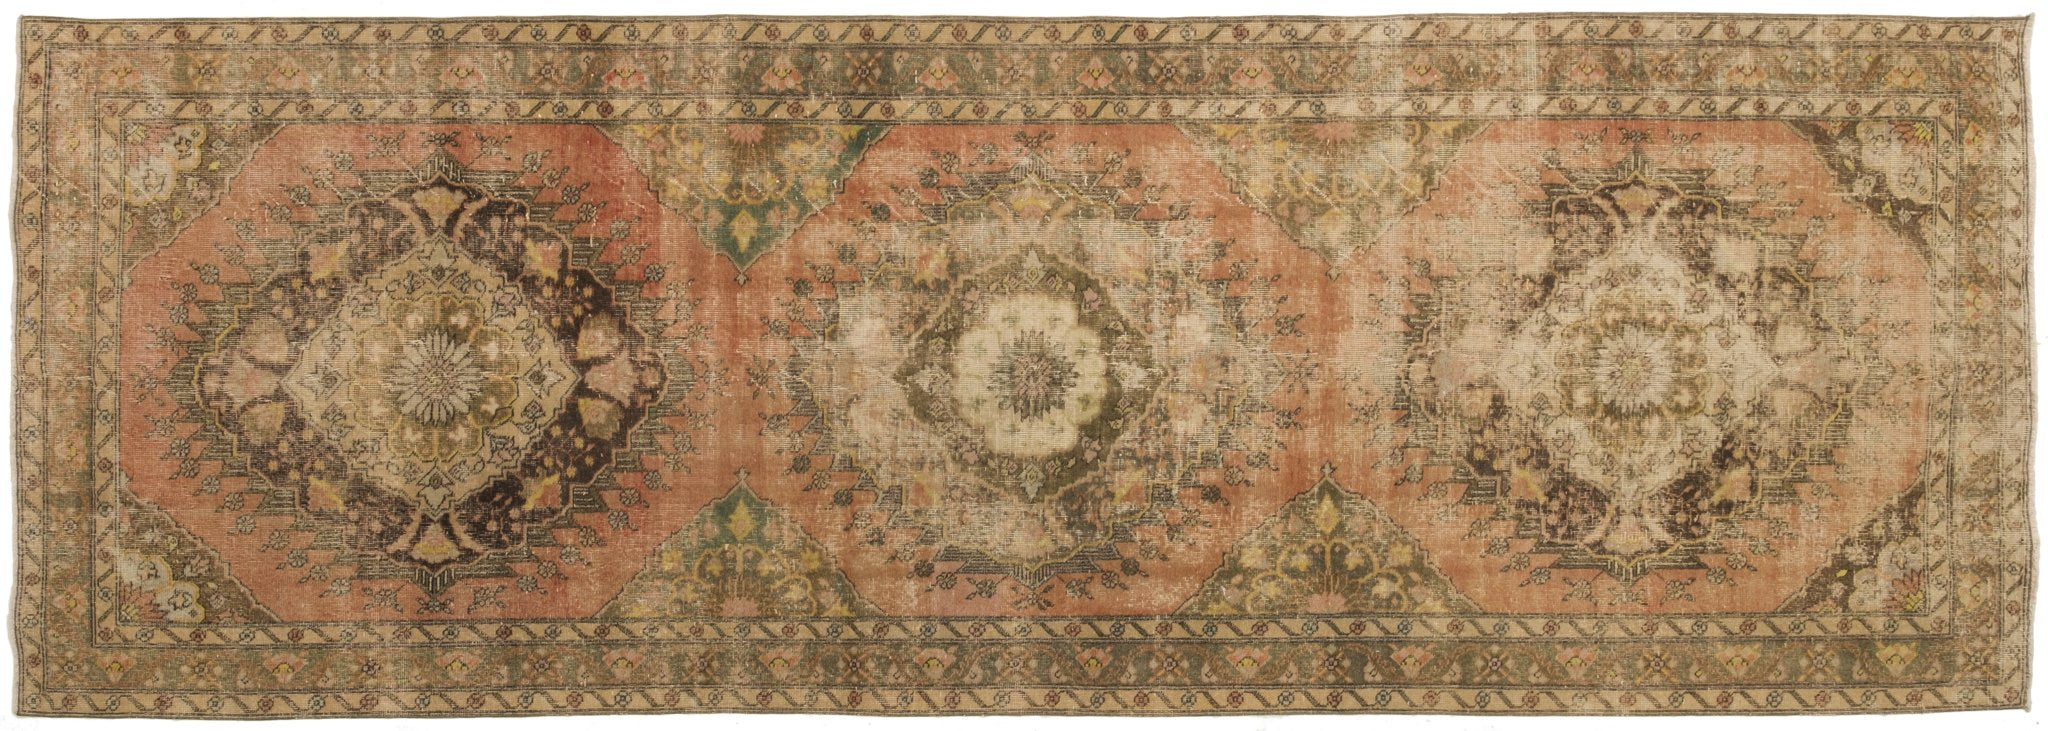 Vintage Turkish Runner Rug Cadfan